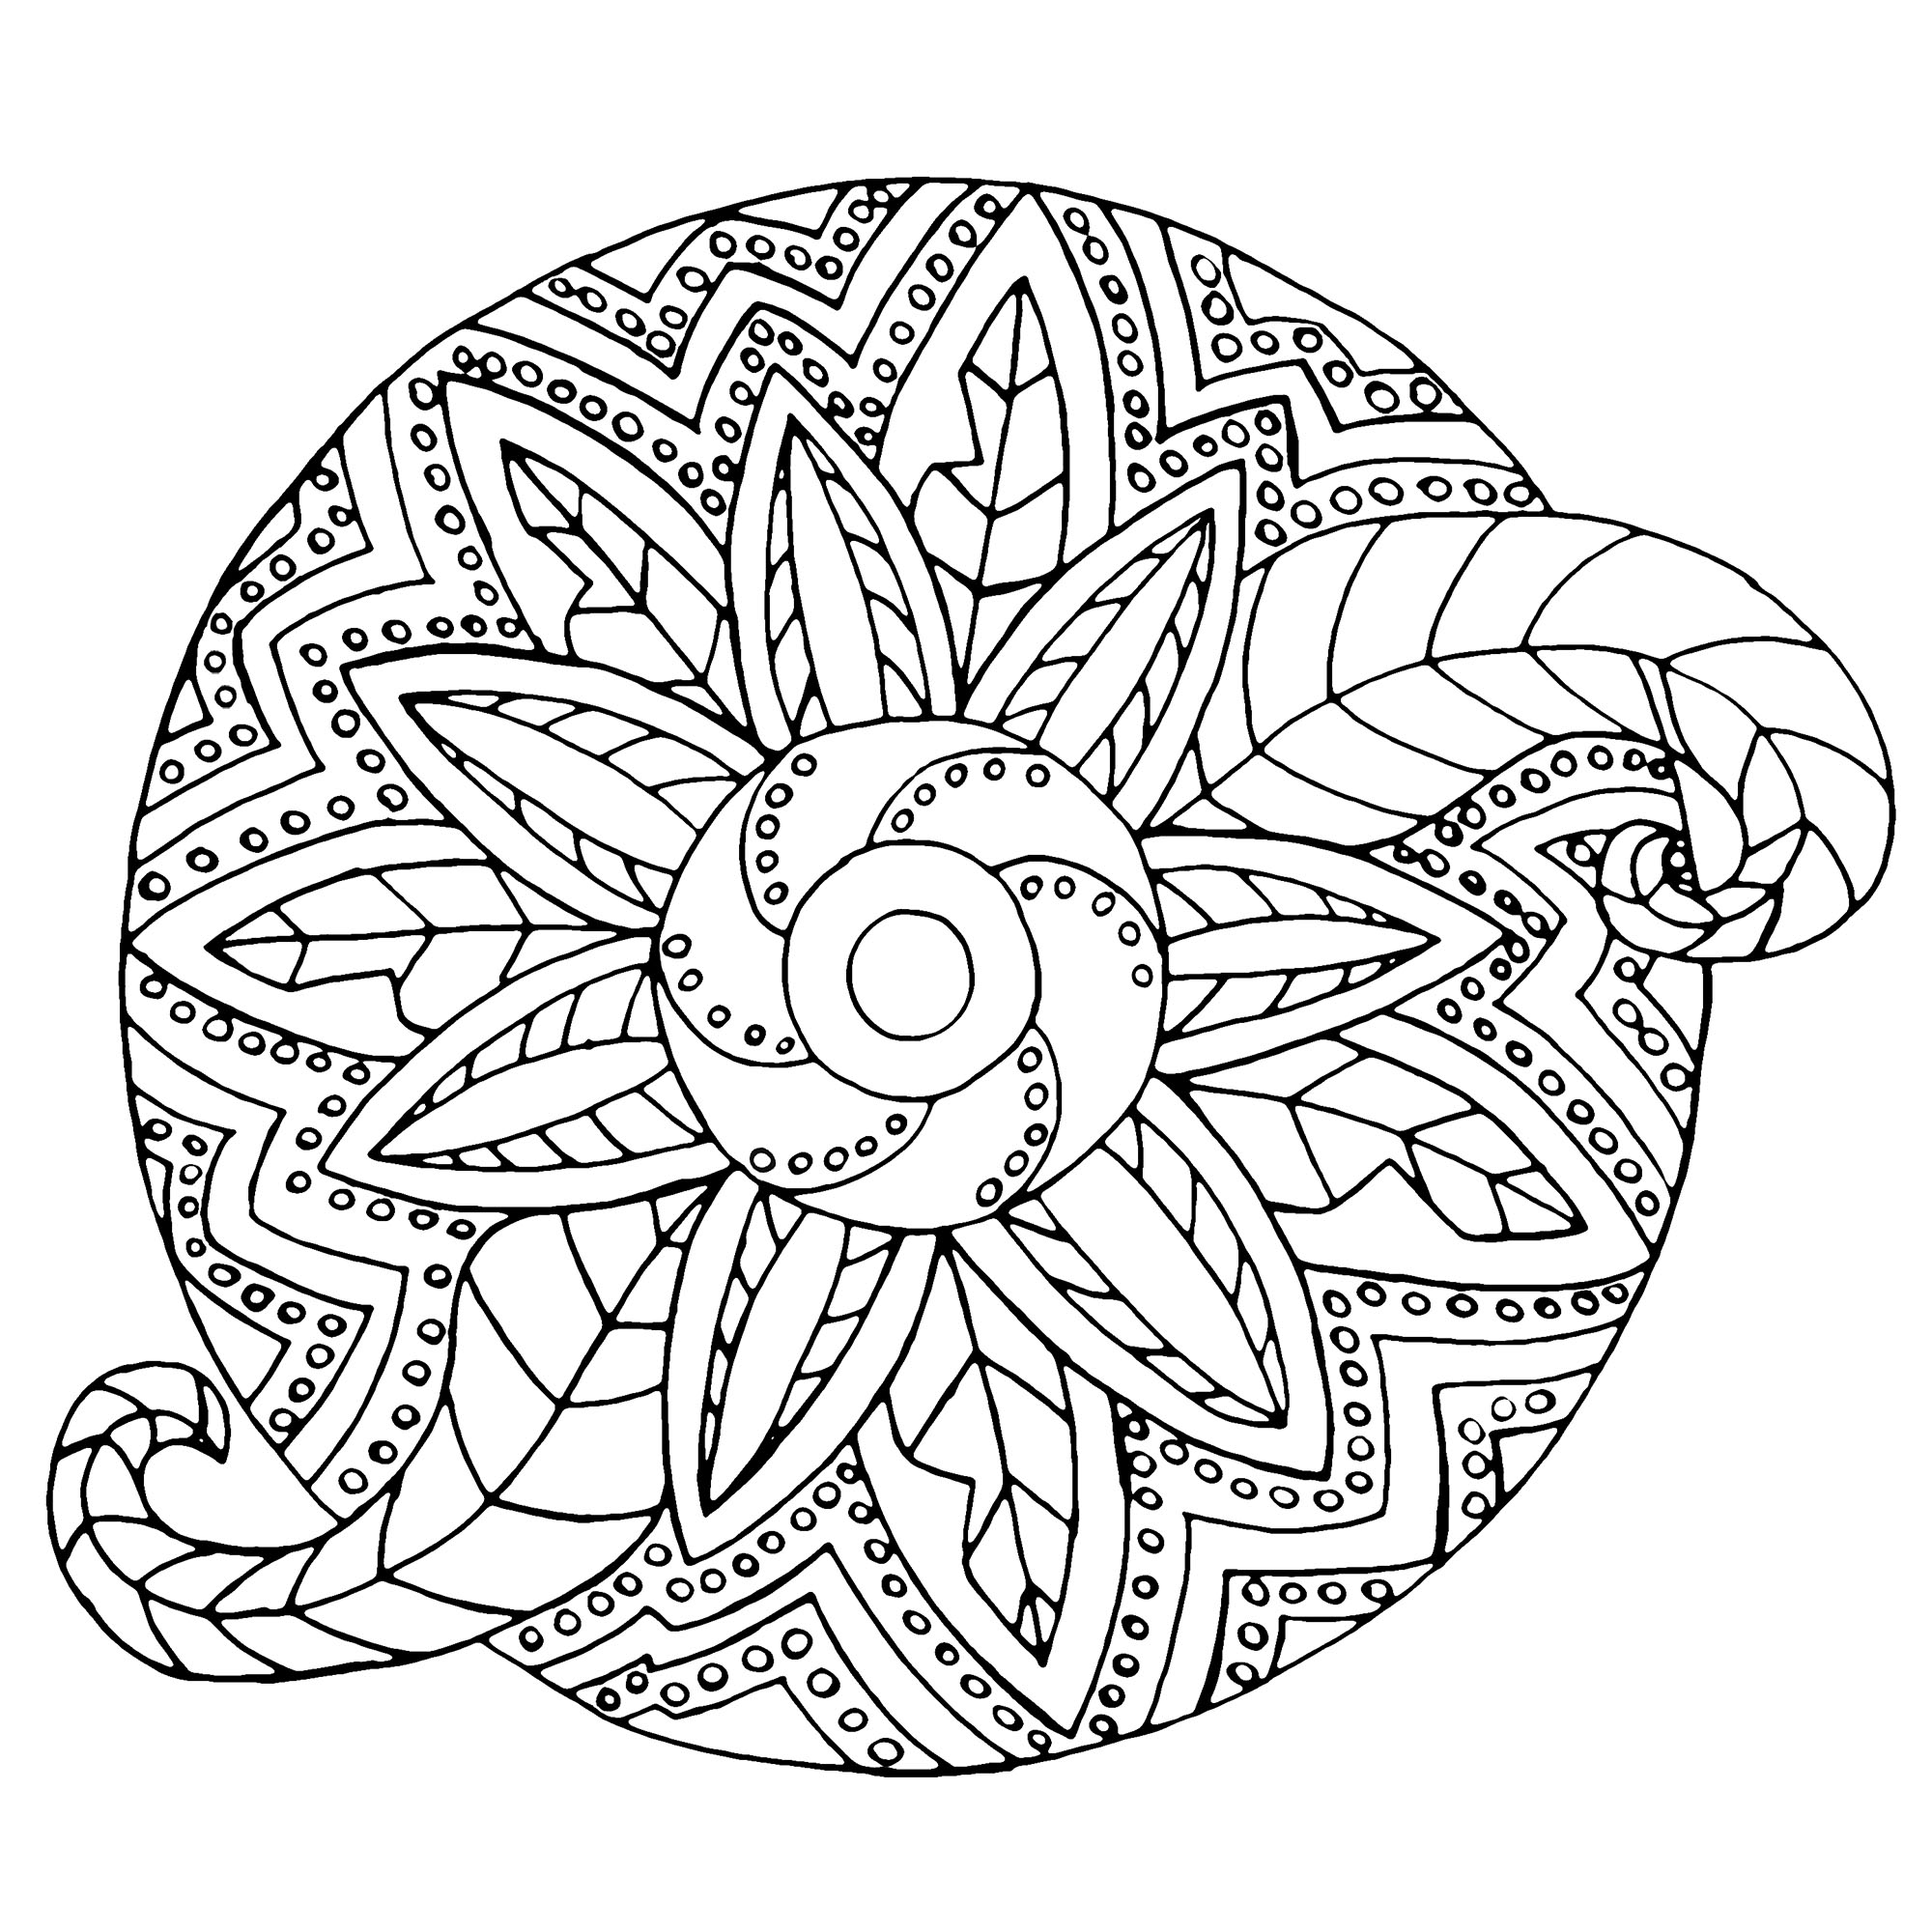 Mandala with both metallic and vegetal shapes. When the plant world fits perfectly into a Mandala drawing, that's what it gives. You can print it for free ! So enjoy !